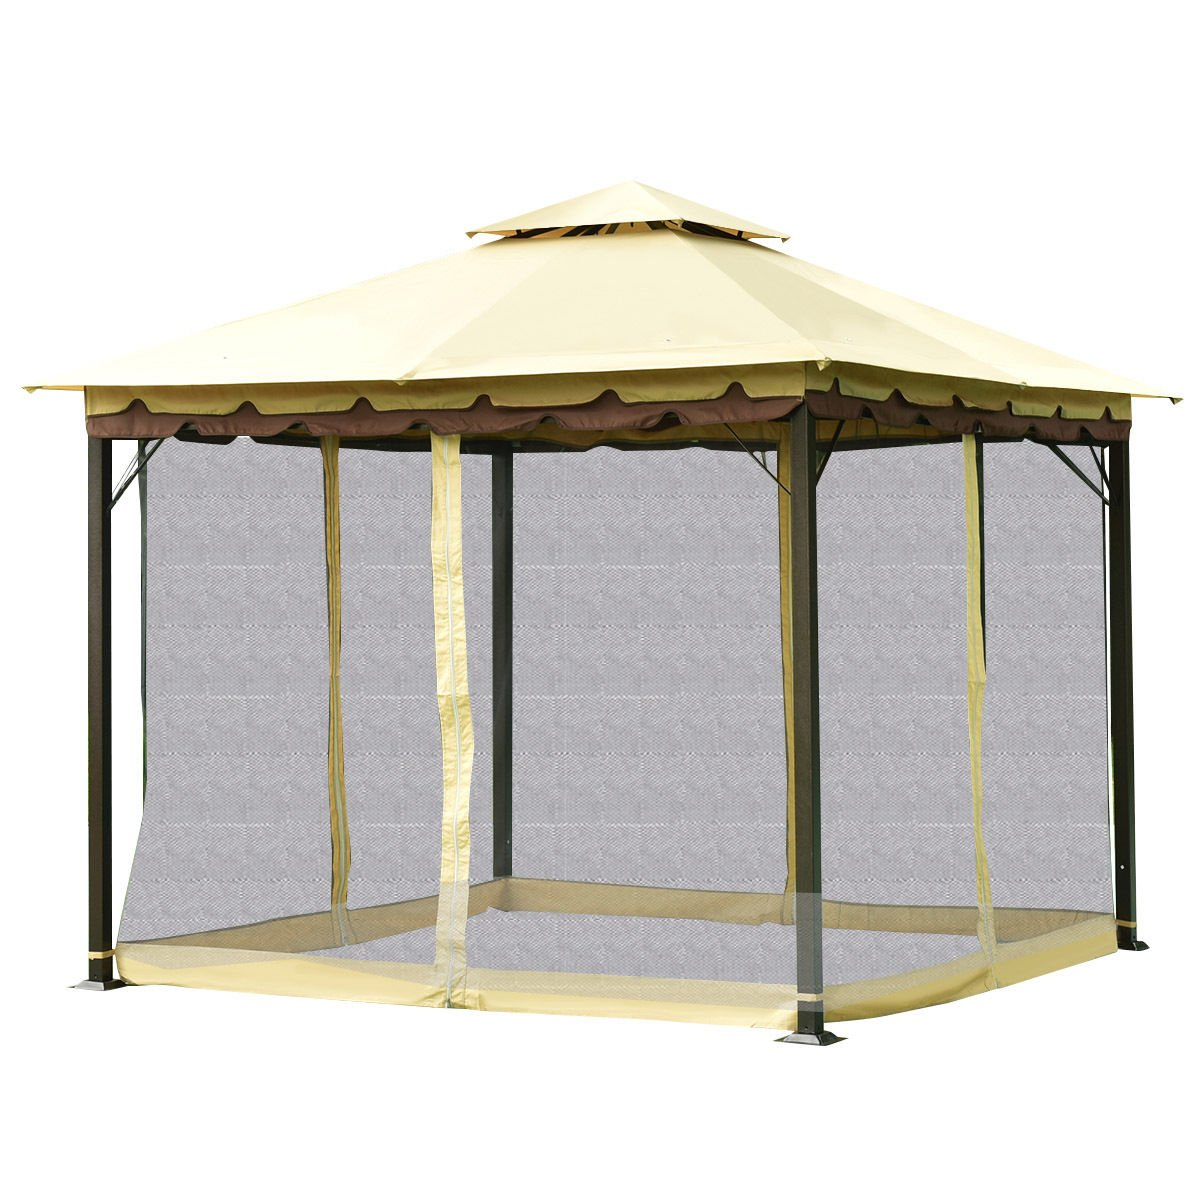 oldzon 2-Tier 10'x10′ Gazebo Canopy Tent Shelter Awning Steel Patio Garden Outdoor with Ebook